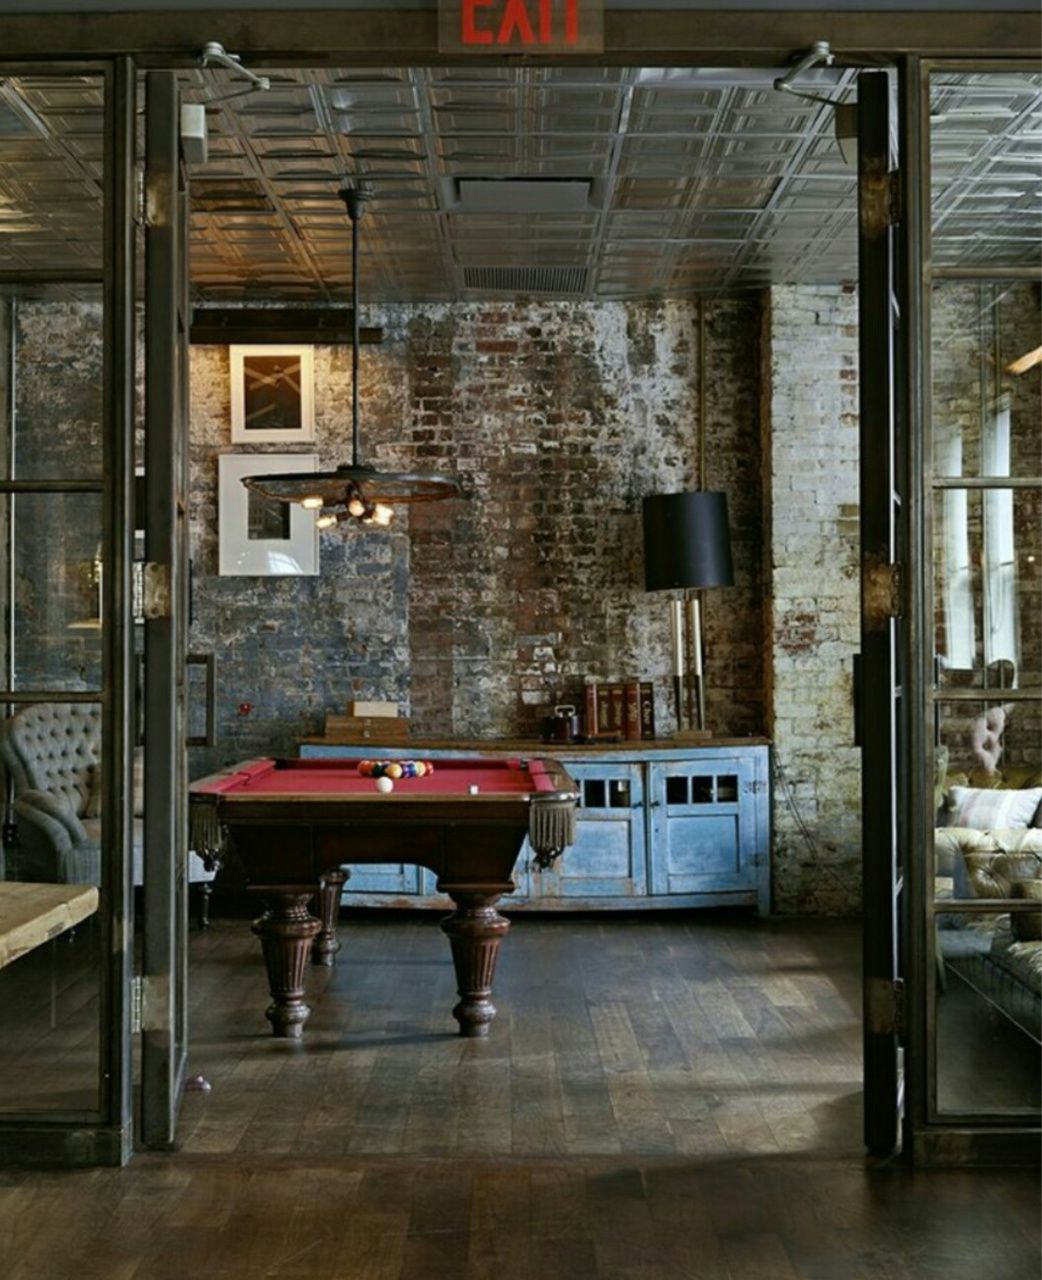 Interiors Pool table industrial loft space